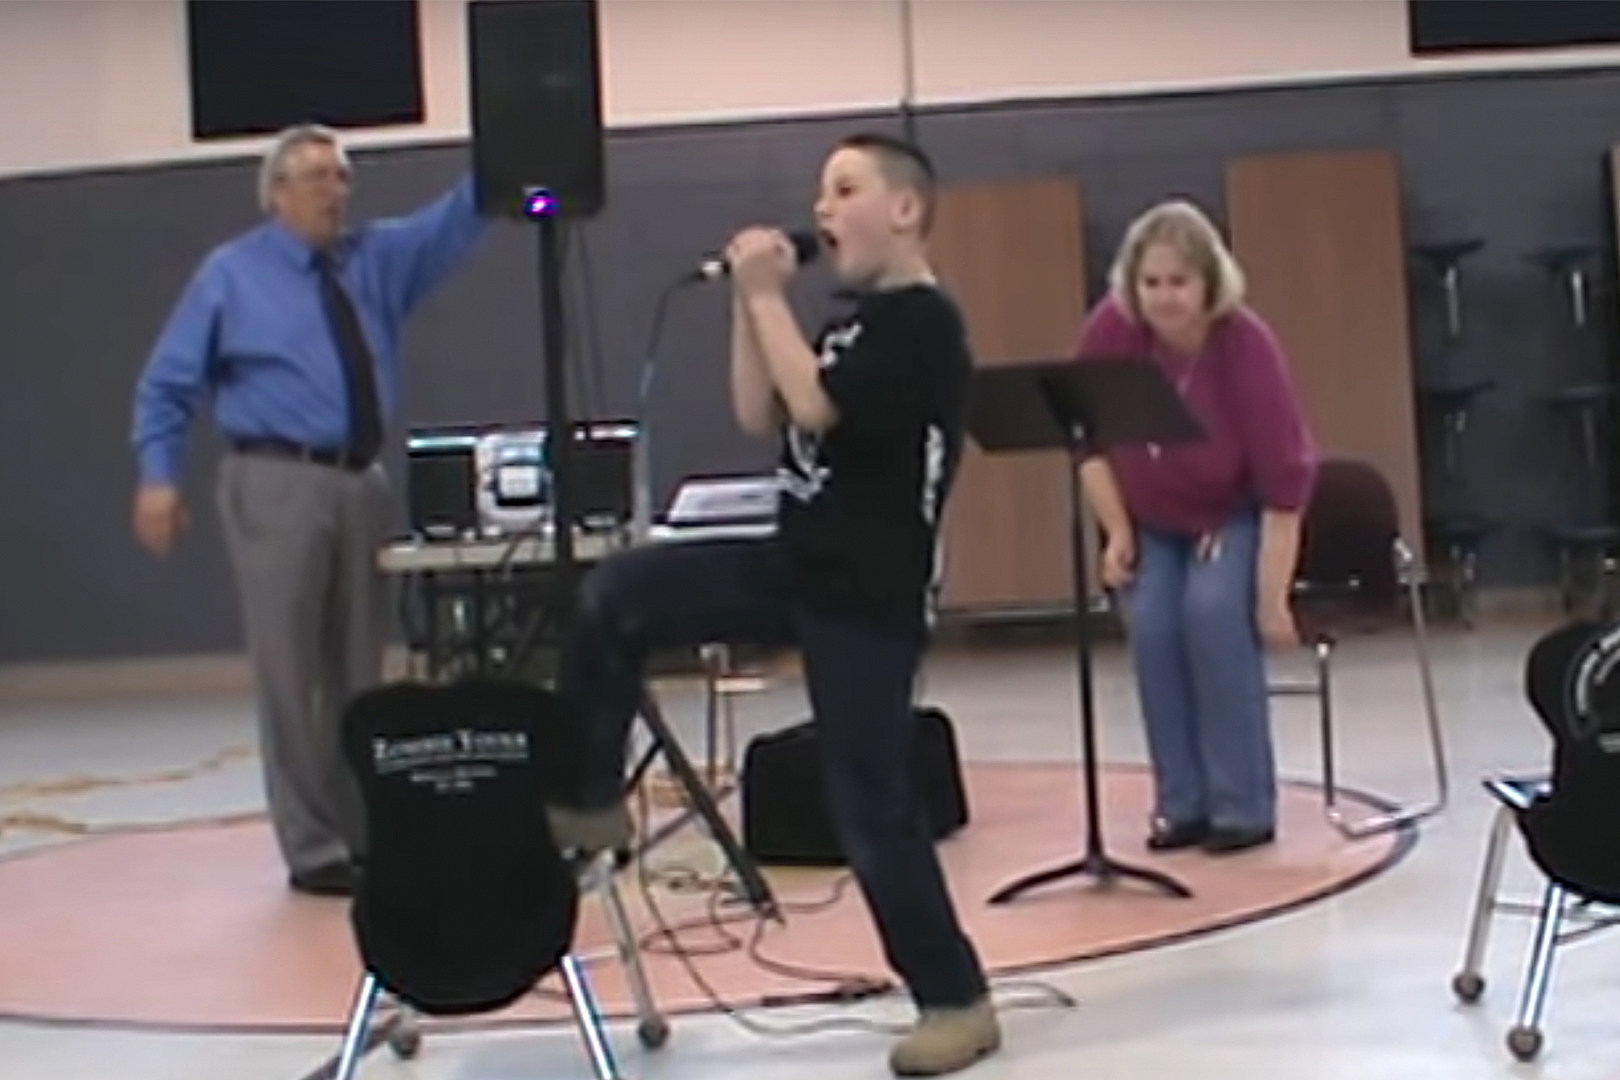 Nine-Year-Old Covering Slipknot at Talent Show Knows What's Up